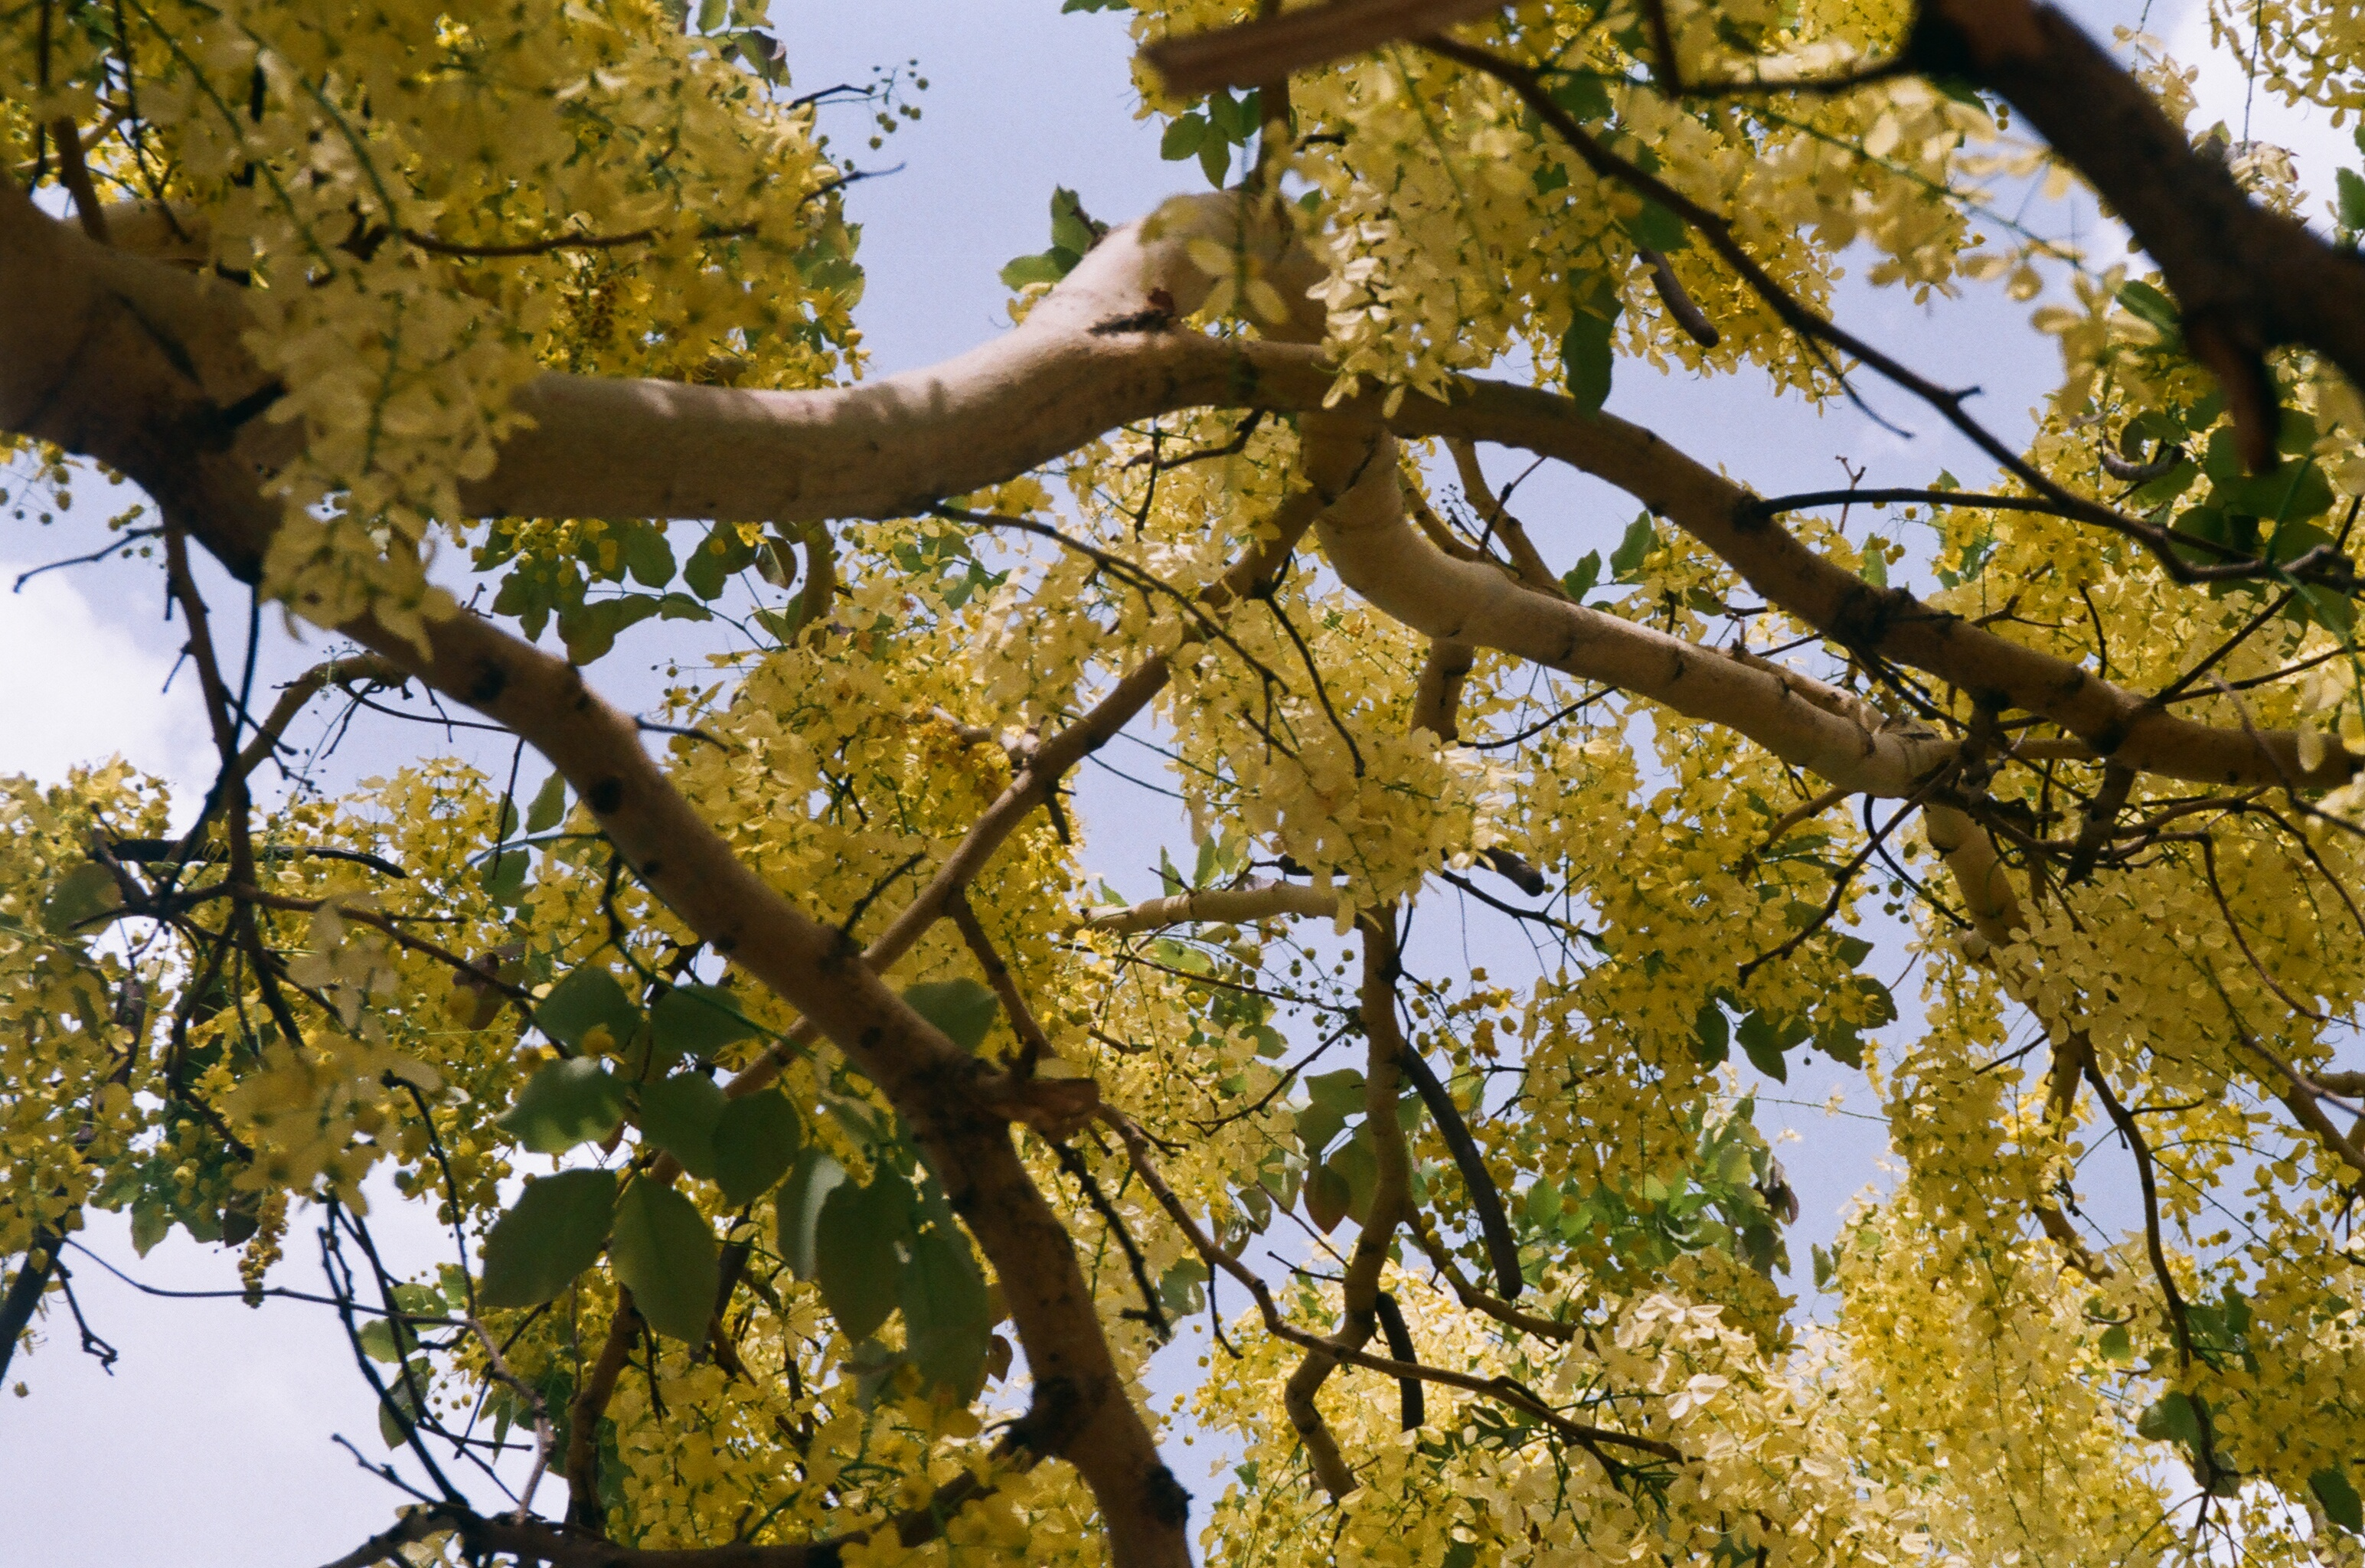 Amaltas-Cassia fistula in full bloom in Jaipur